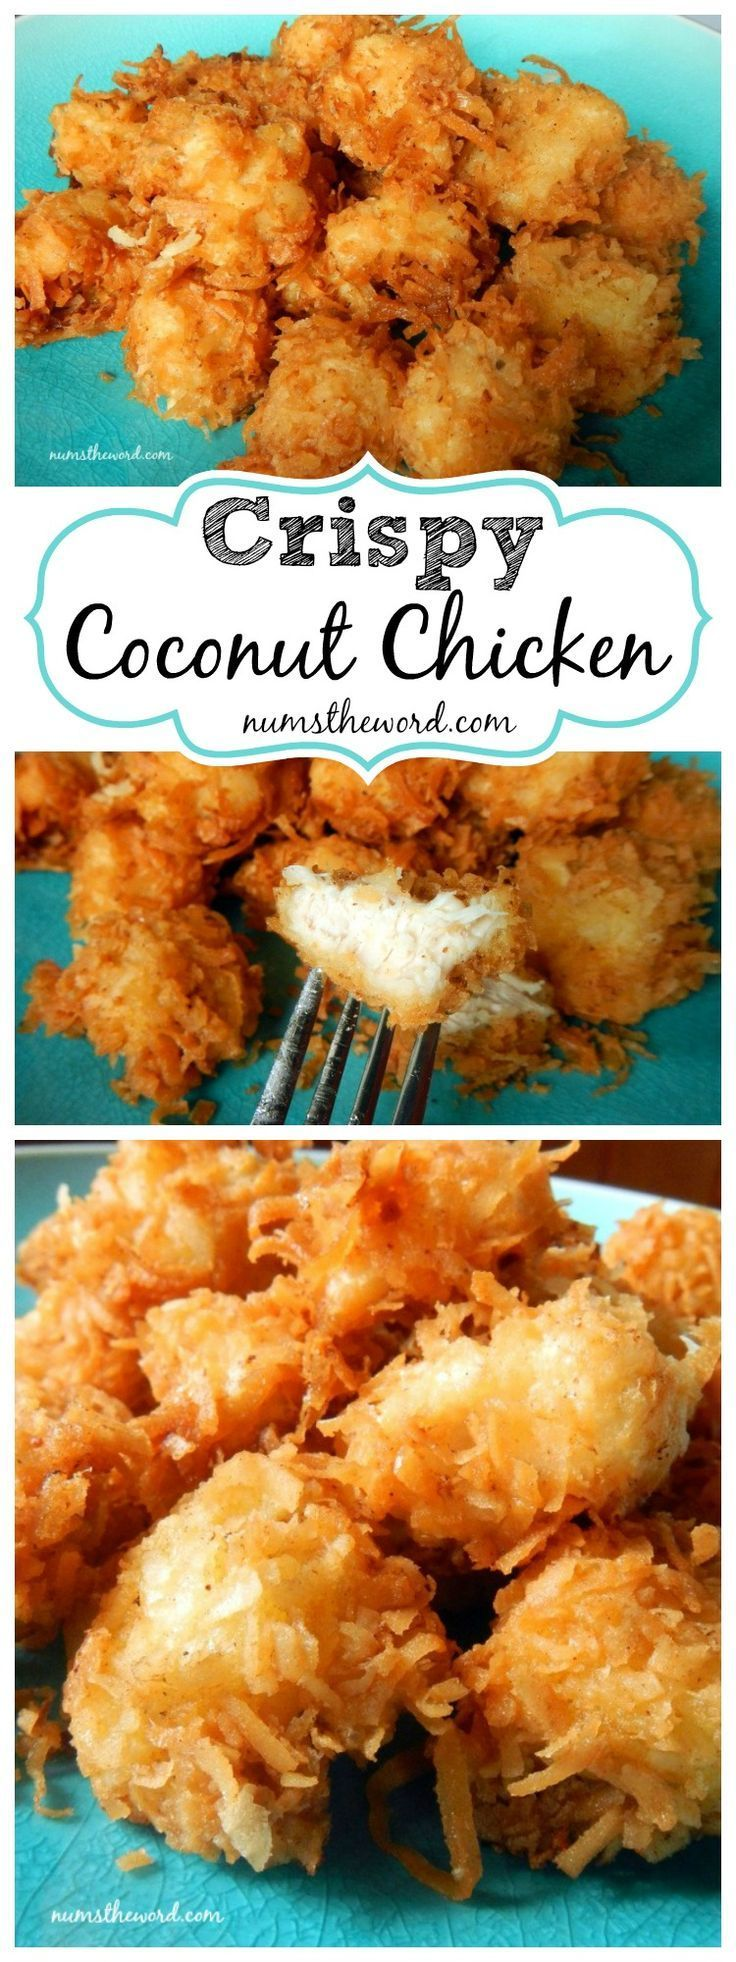 This simple 30 minute dish is packed with flavor. Crispy Coconut Chicken is now my new favorite meal. The crunchy coconut is packed with flavor the entire family will love and it is so quick to whip up! Gluten Free!